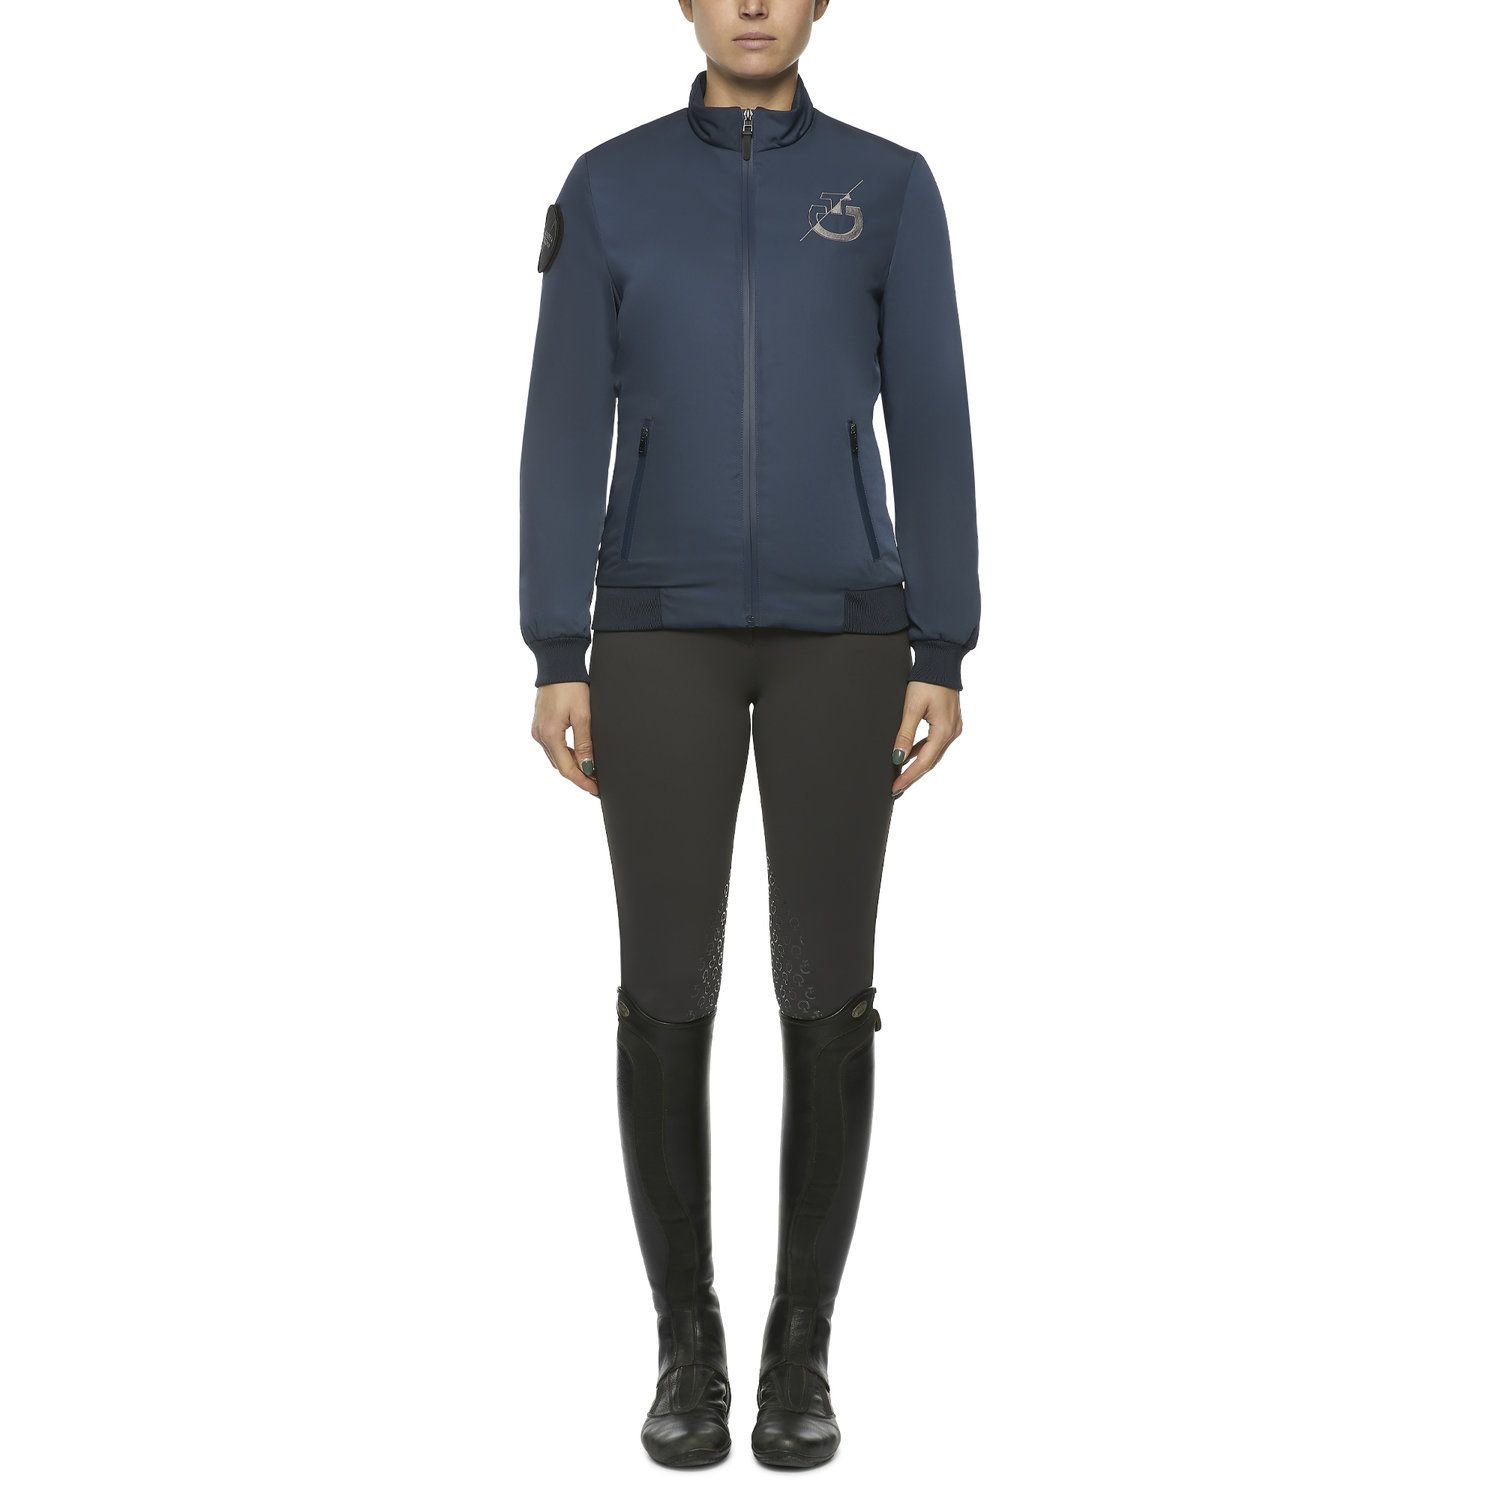 CT Team women's bomber